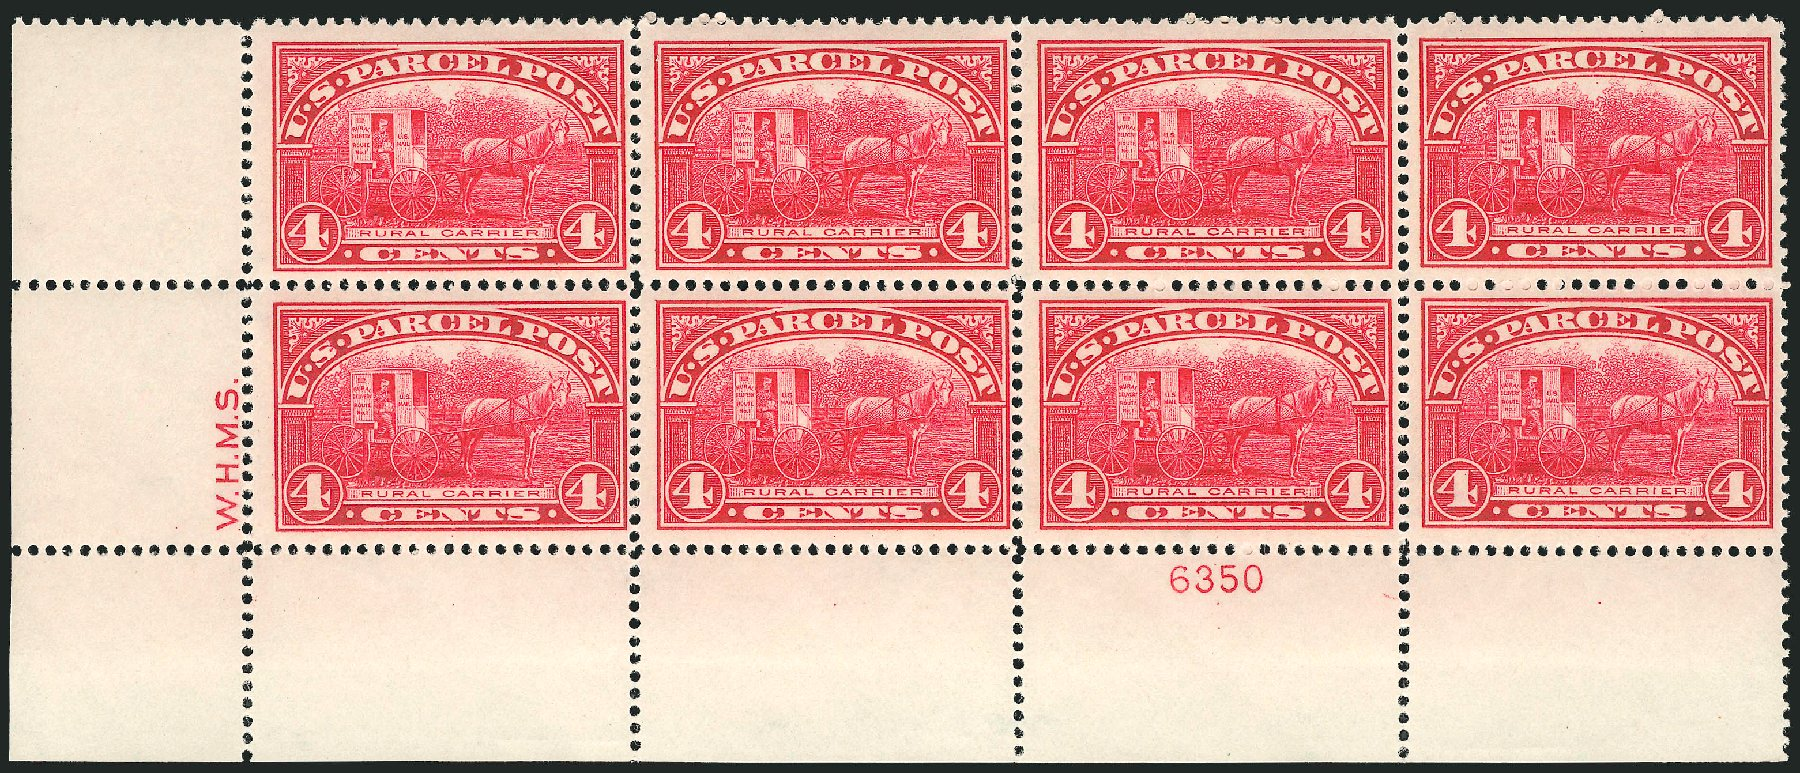 Costs of US Stamp Scott #Q4 - 1913 4c Parcel Post. Robert Siegel Auction Galleries, Mar 2015, Sale 1094, Lot 278